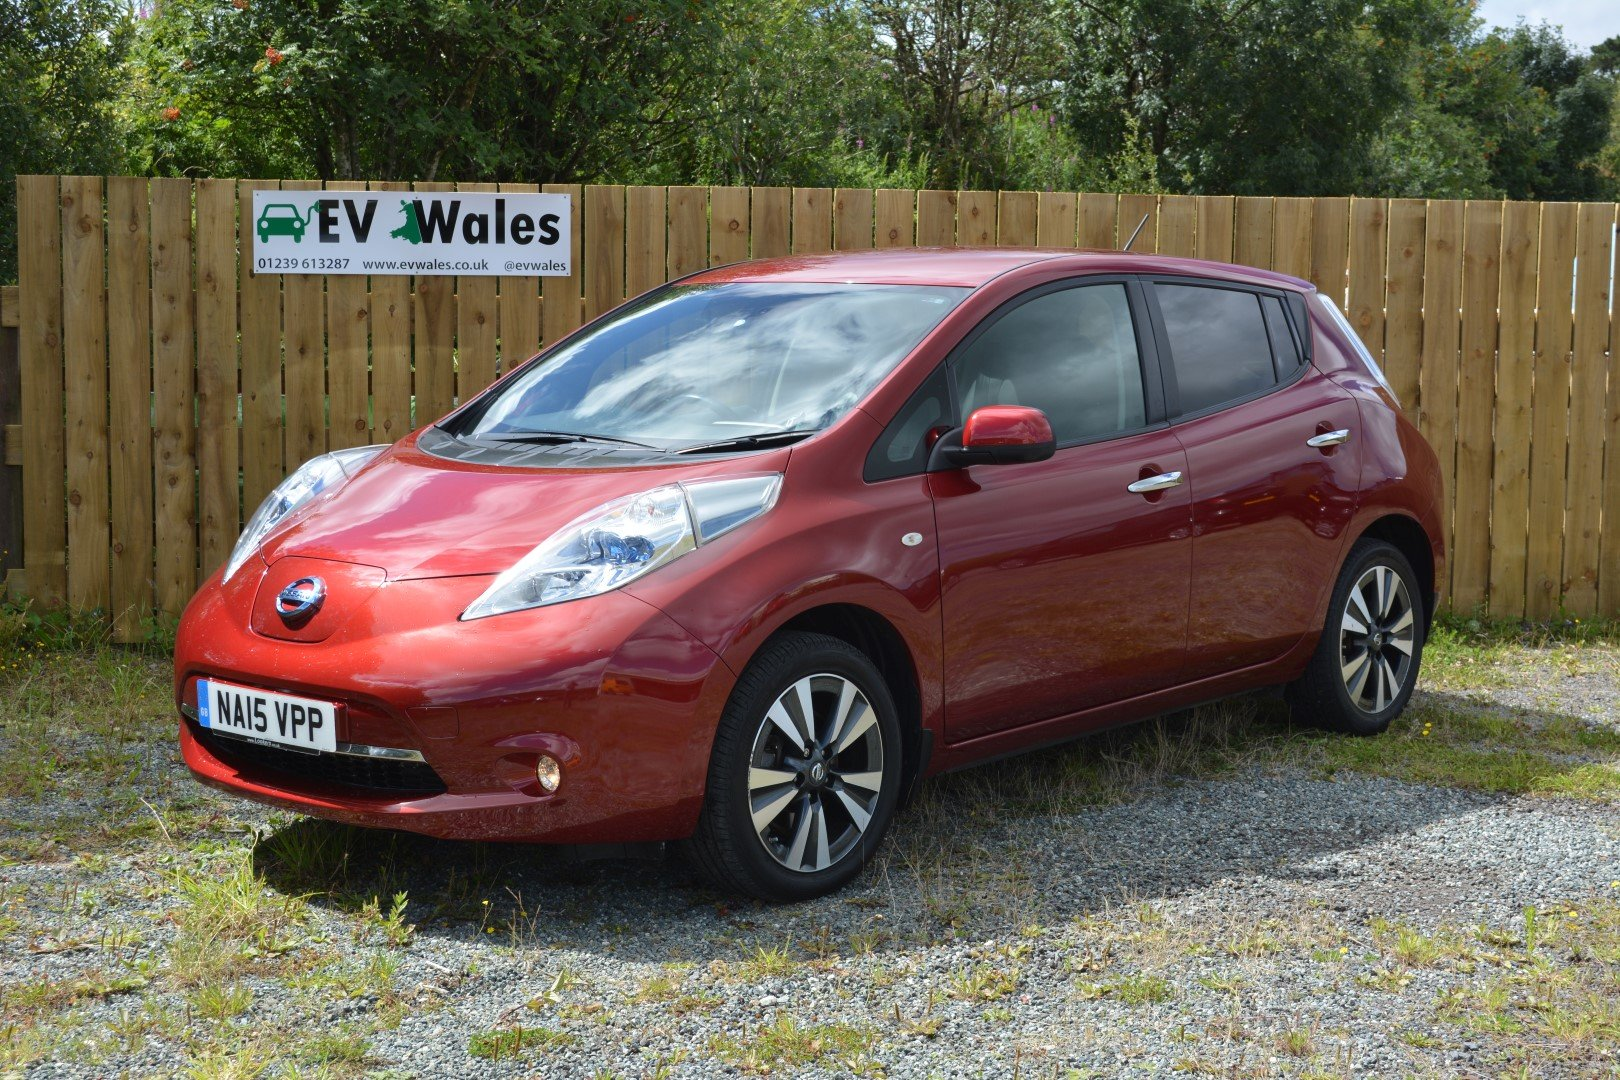 2015 Nissan Leaf Tekna 24kwh - Heated Leather - Sat Nav For Sale (picture 1 of 6)